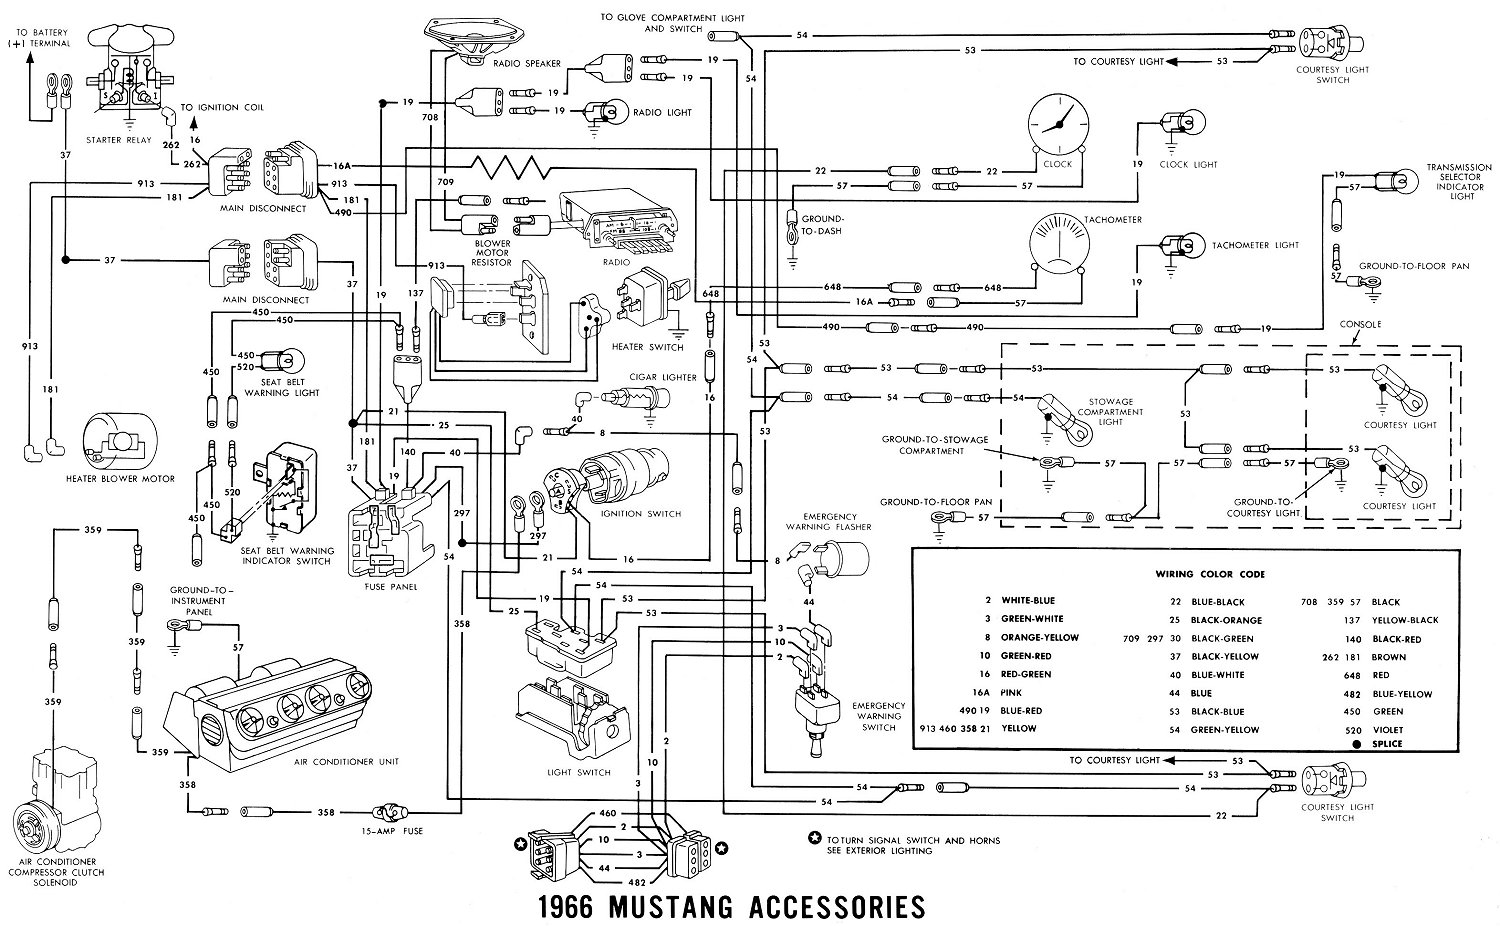 1966 mustang wiring harness diagram detailed schematics diagram rh  lelandlutheran com 1965 Mustang Color Wiring Diagram